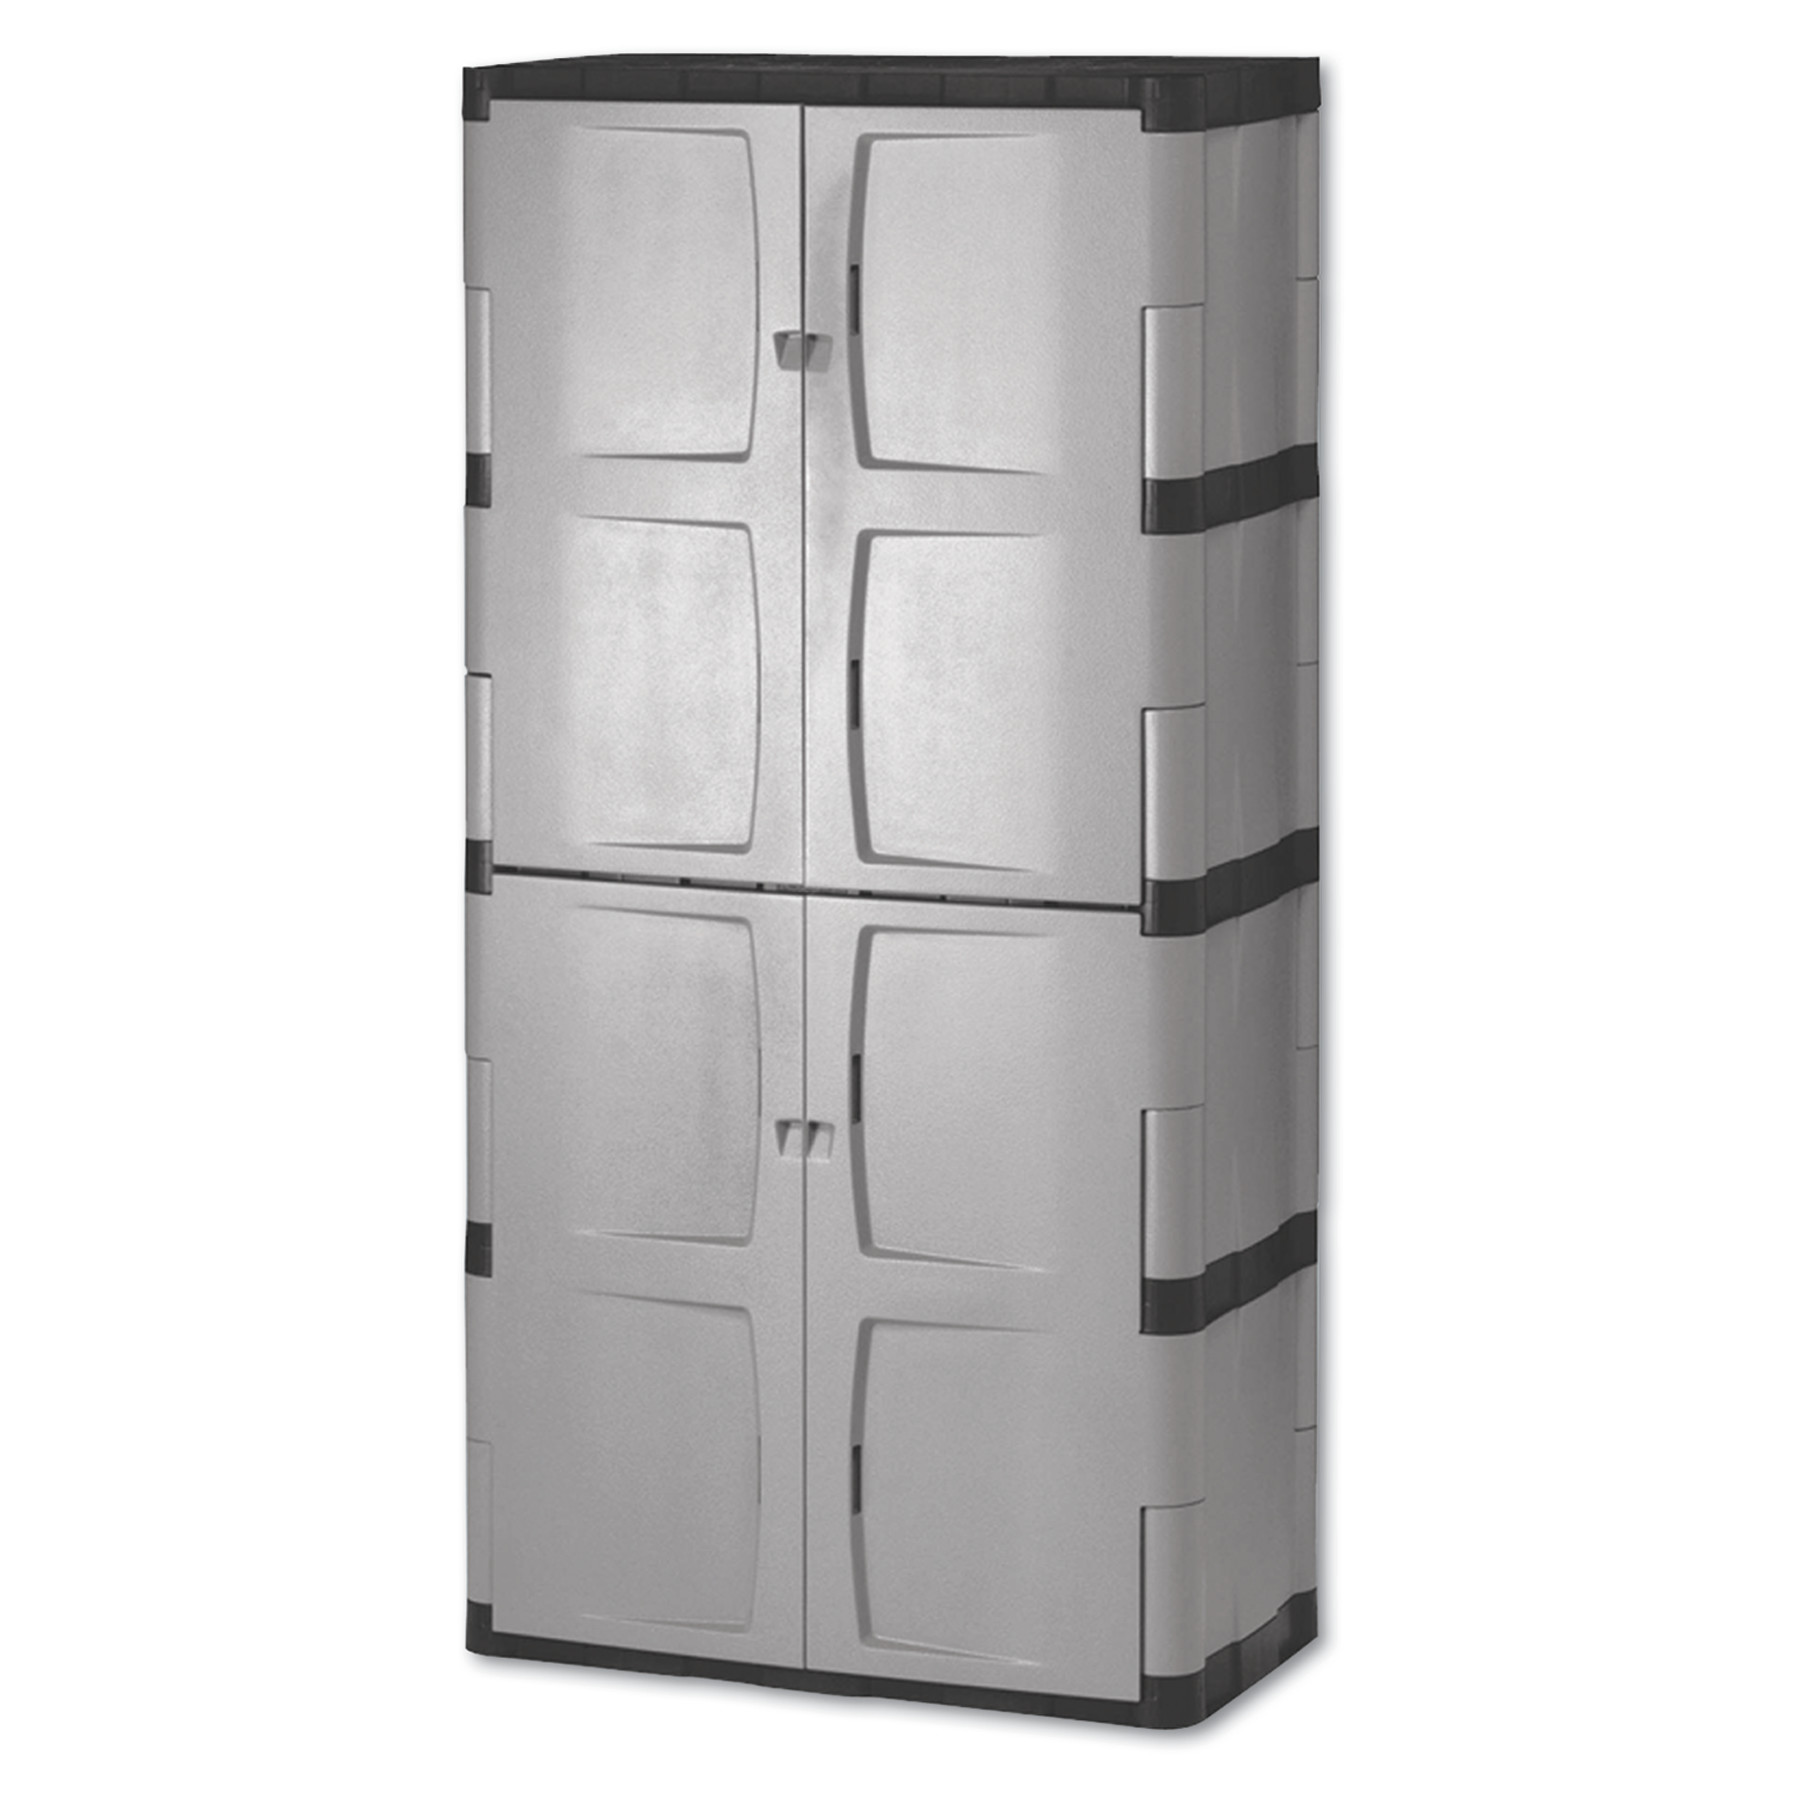 cabinets for storage. rubbermaid double-door storage cabinet - base/top, 36w x 18d 72h cabinets for n